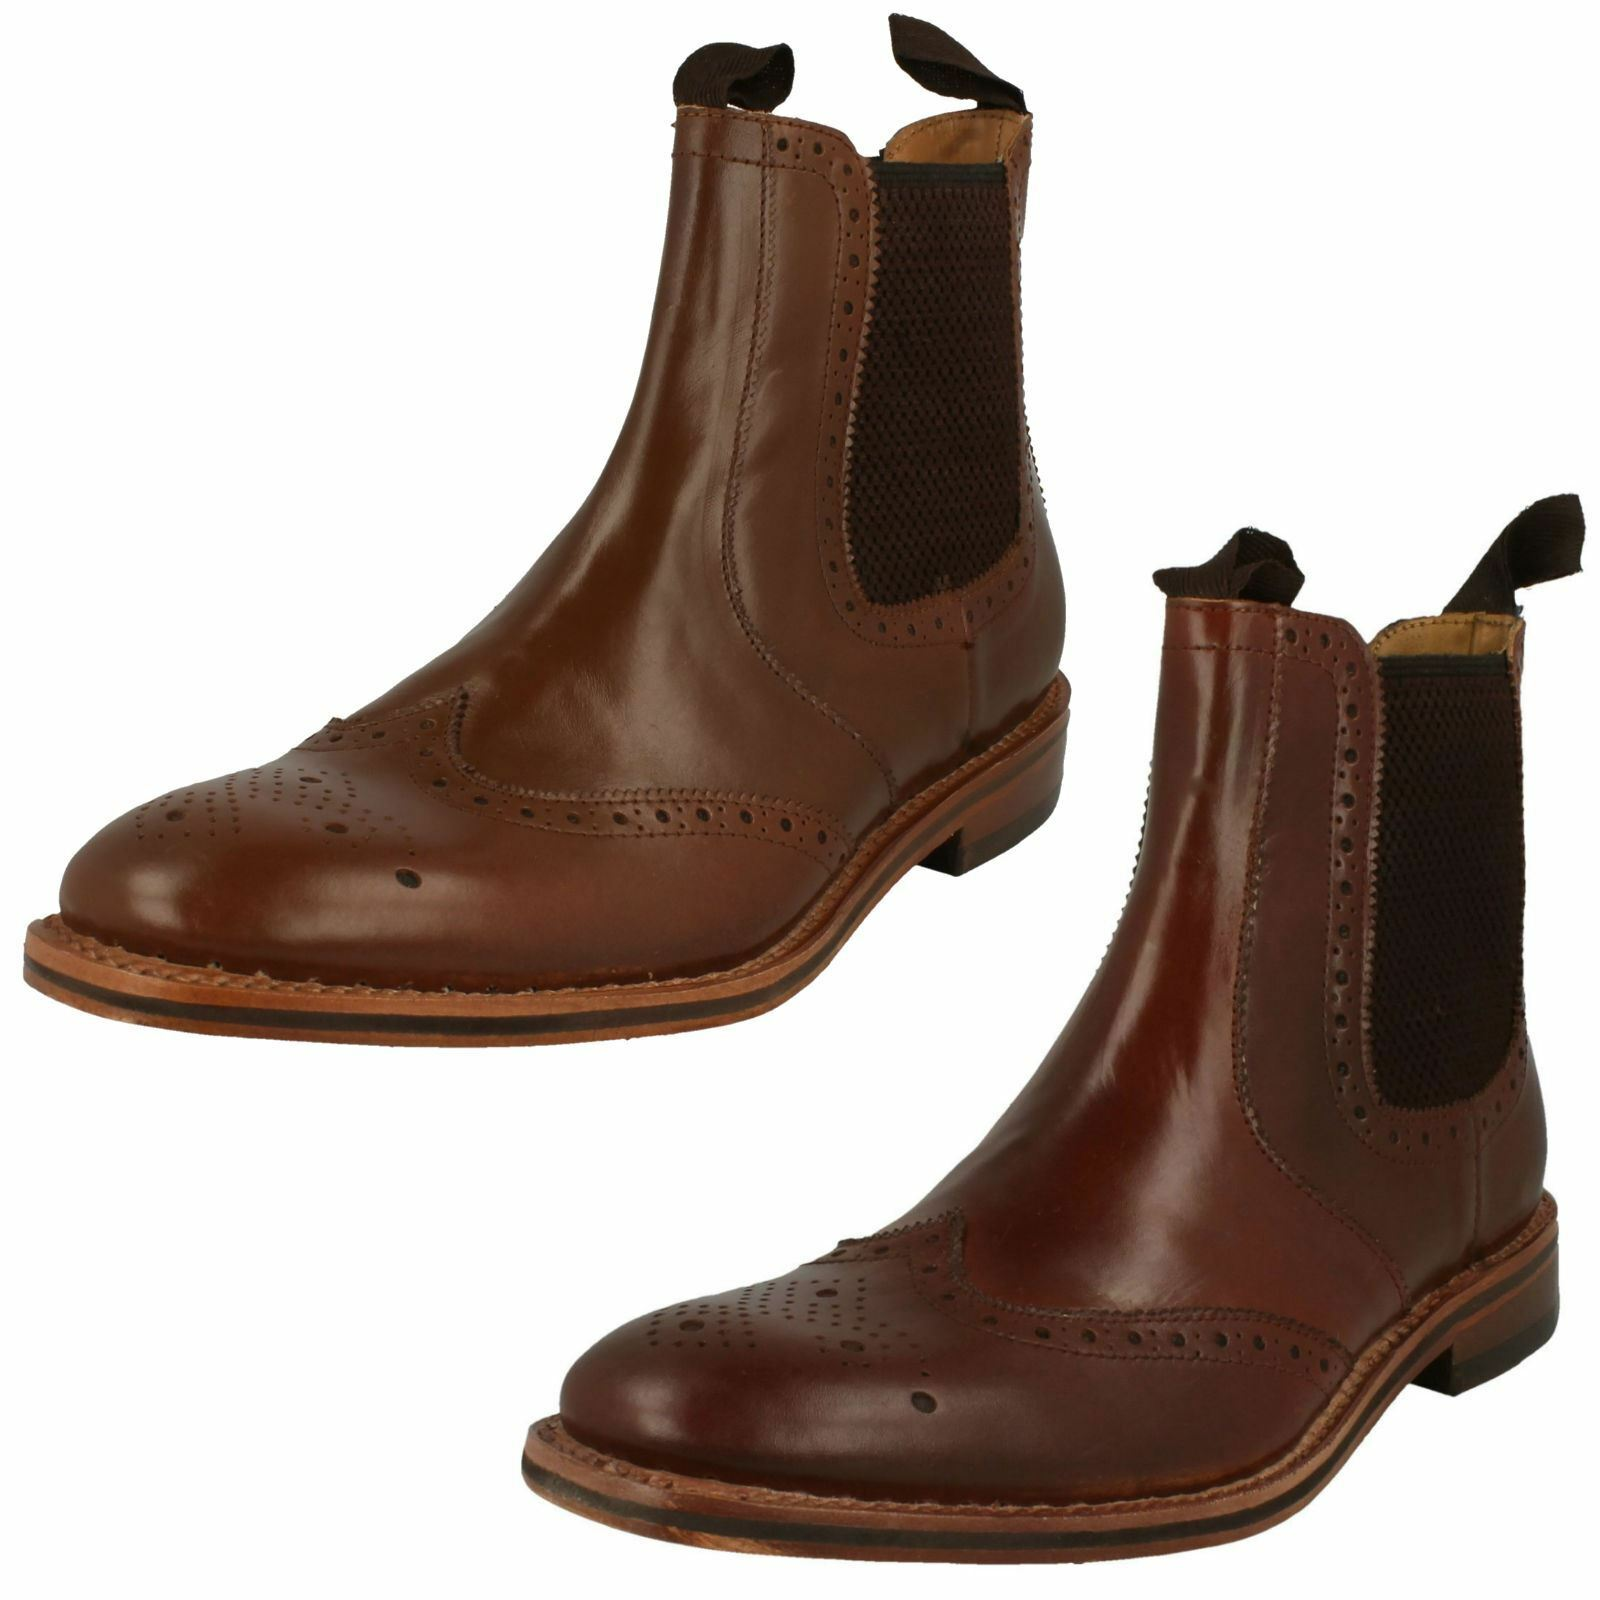 Hommes Catesby Arrondi Orteil intelligent À Enfiler Bottines En Cuir MCATESCW 158 T